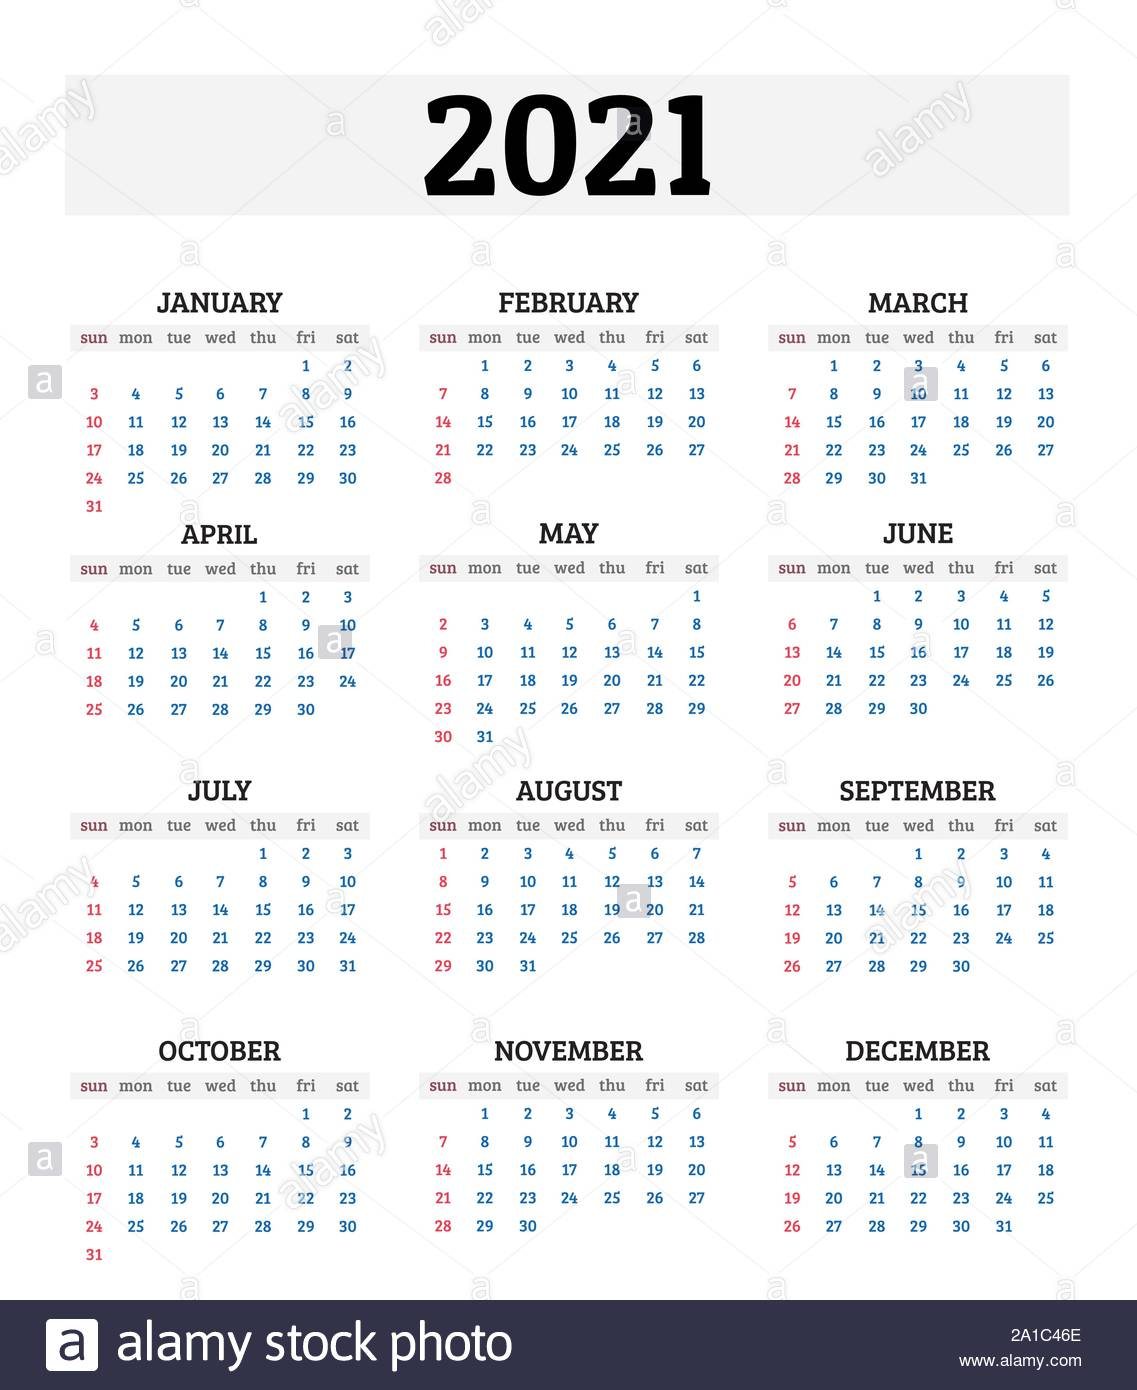 2021 Annual Calendar. Vector Illustration Stock Vector Image